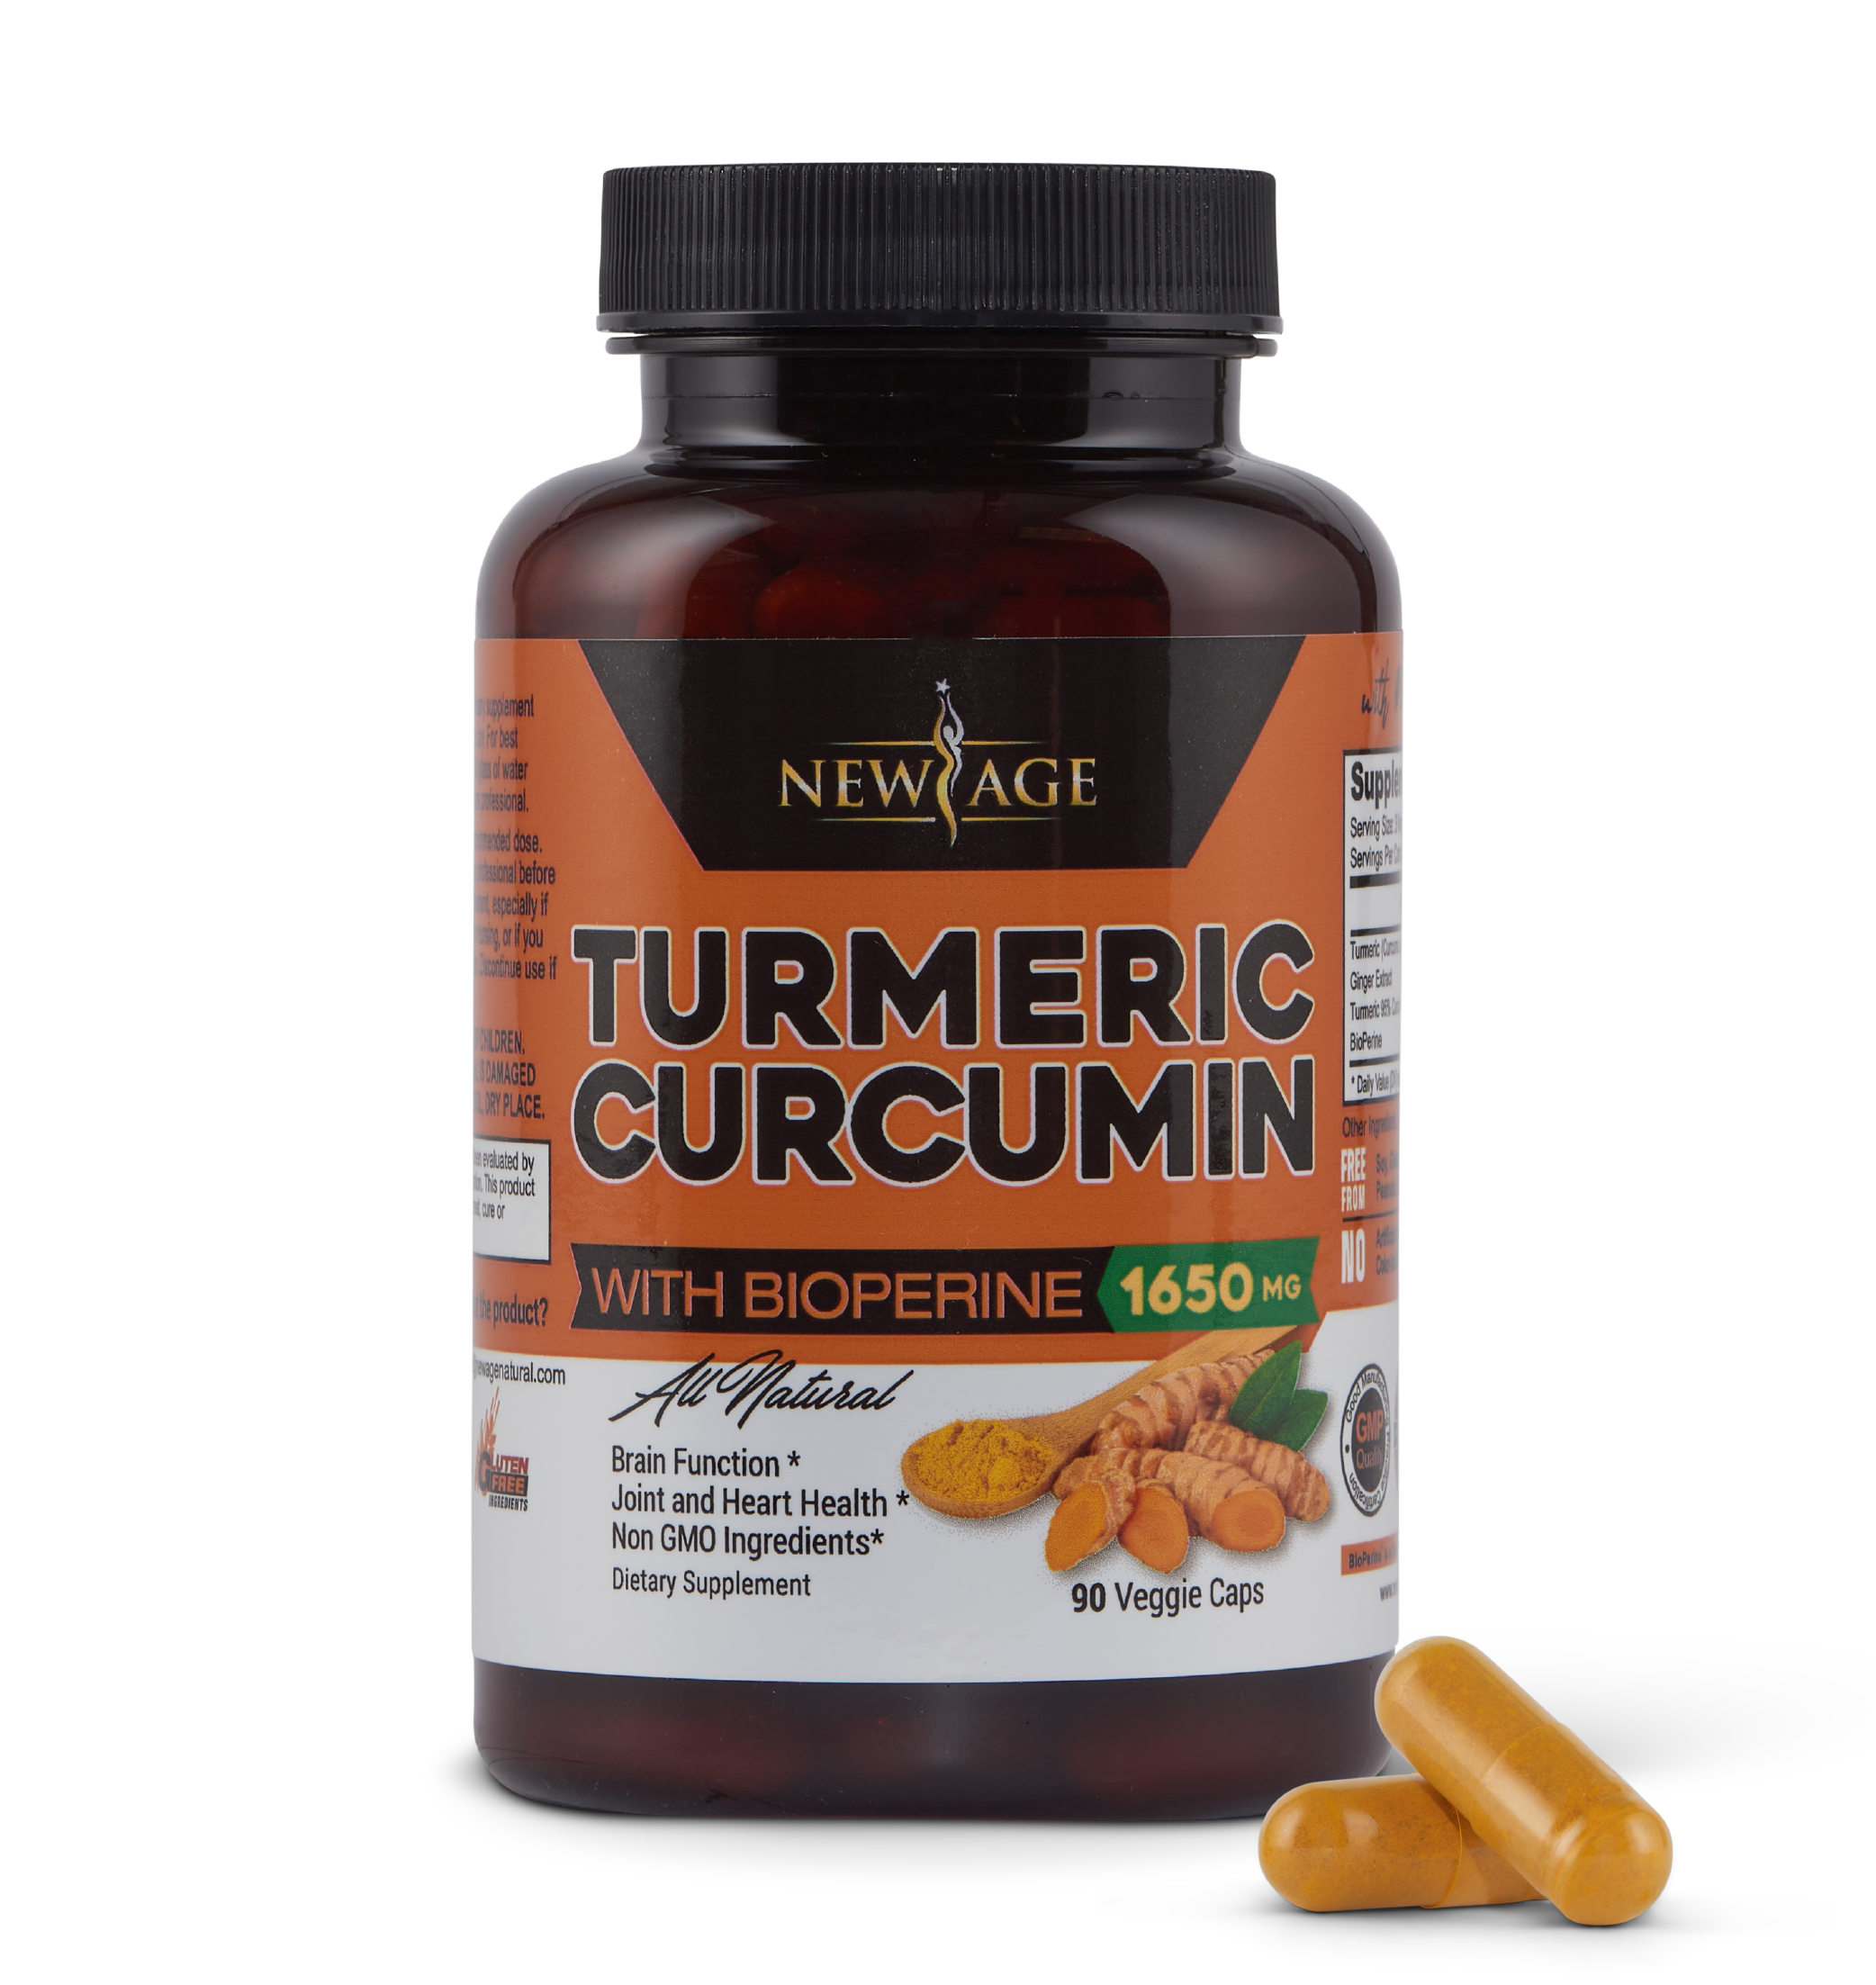 New Age Turmeric Curcumin Capsules - One Bottle